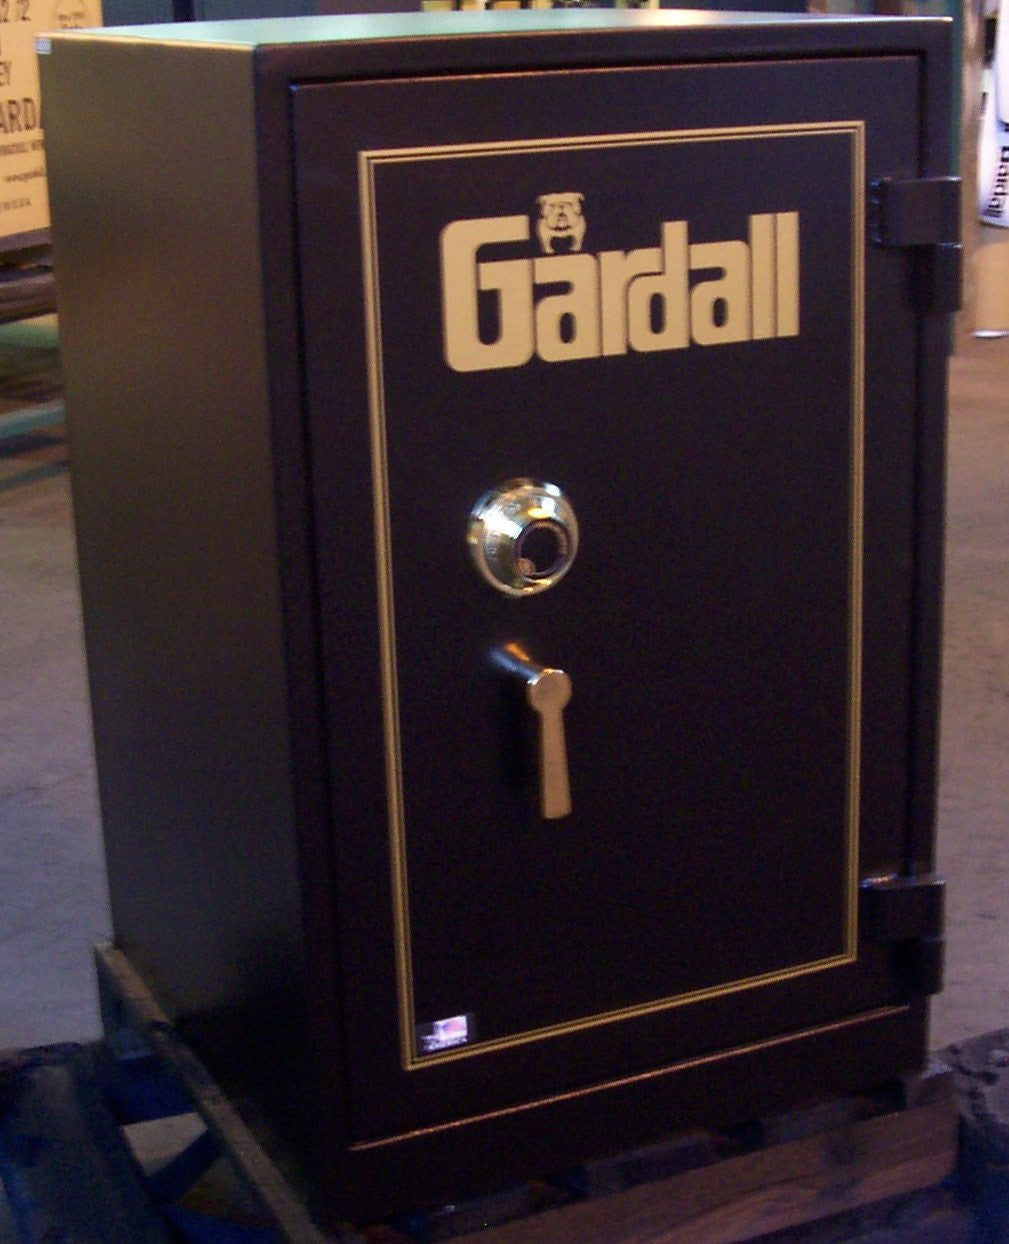 Gardall 1818-2 Burglar & Two Hour Fire Safe